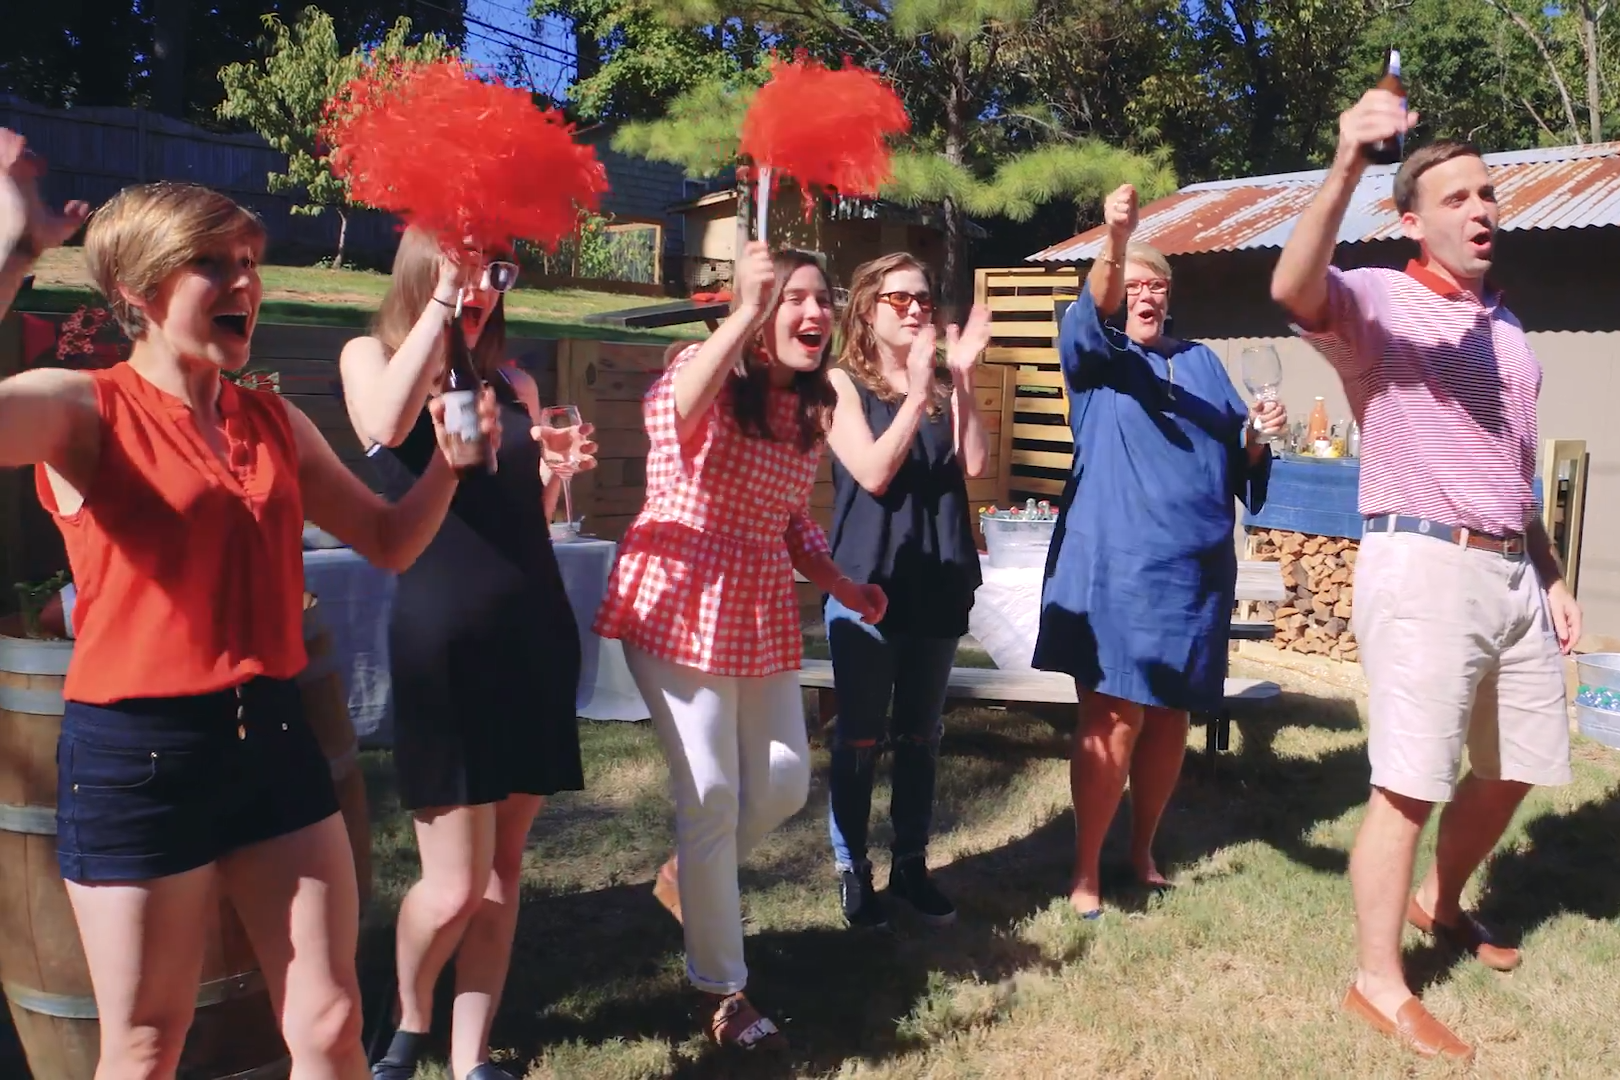 Hey Y'all Episode 3: Ivy Hosts the Ultimate Backyard Tailgate